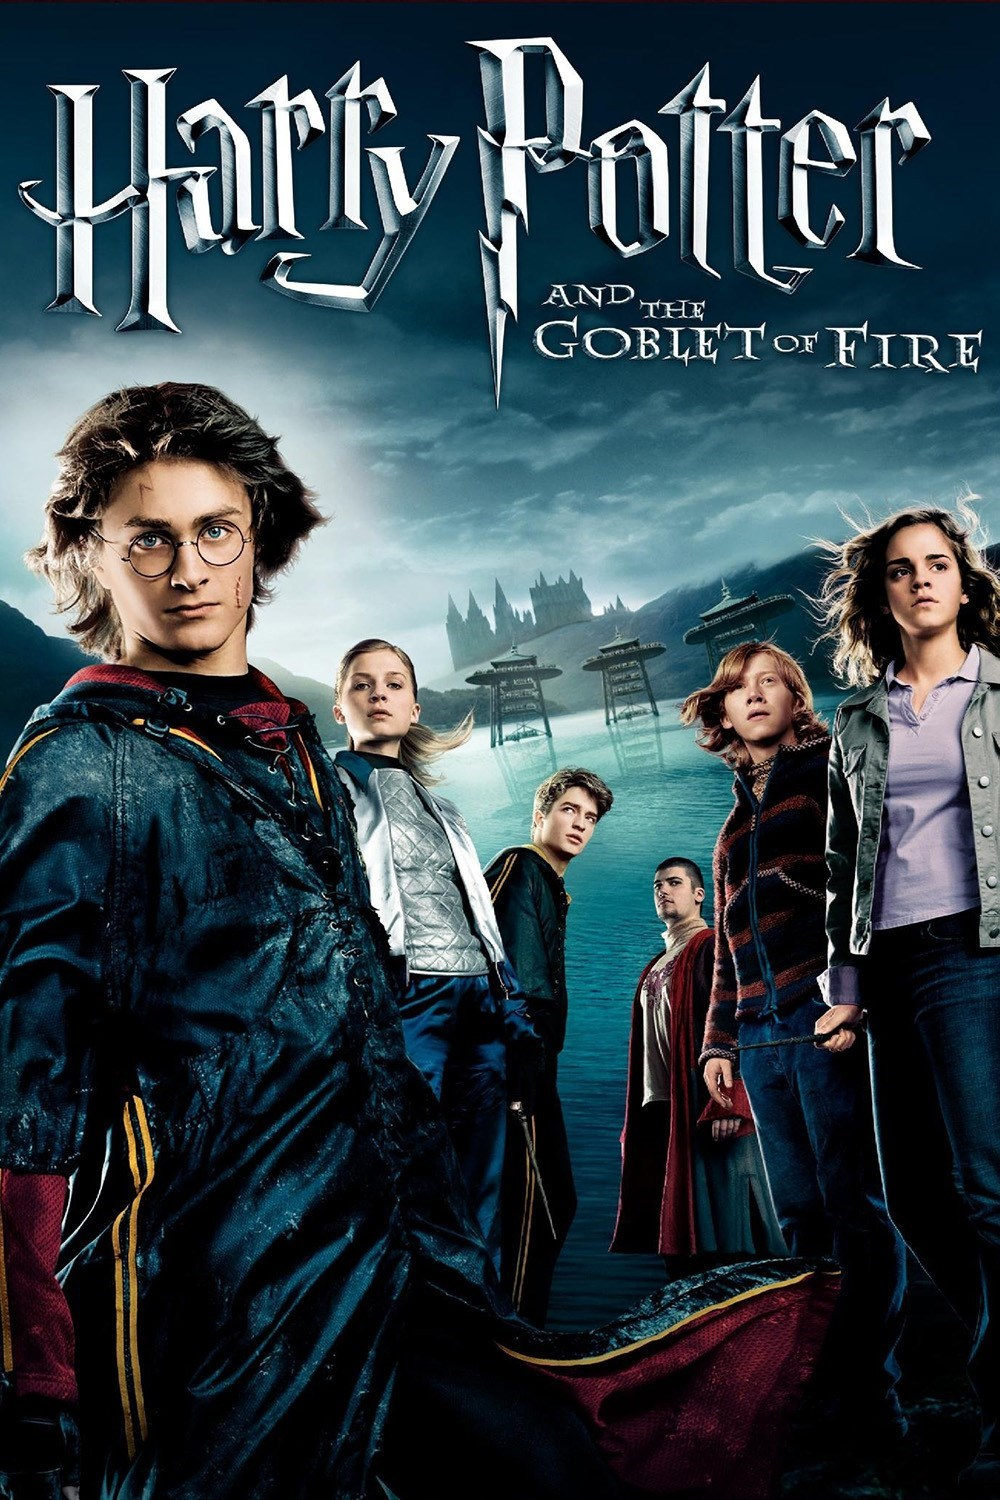 دانلود فیلم Harry Potter and the Goblet of Fire 2005